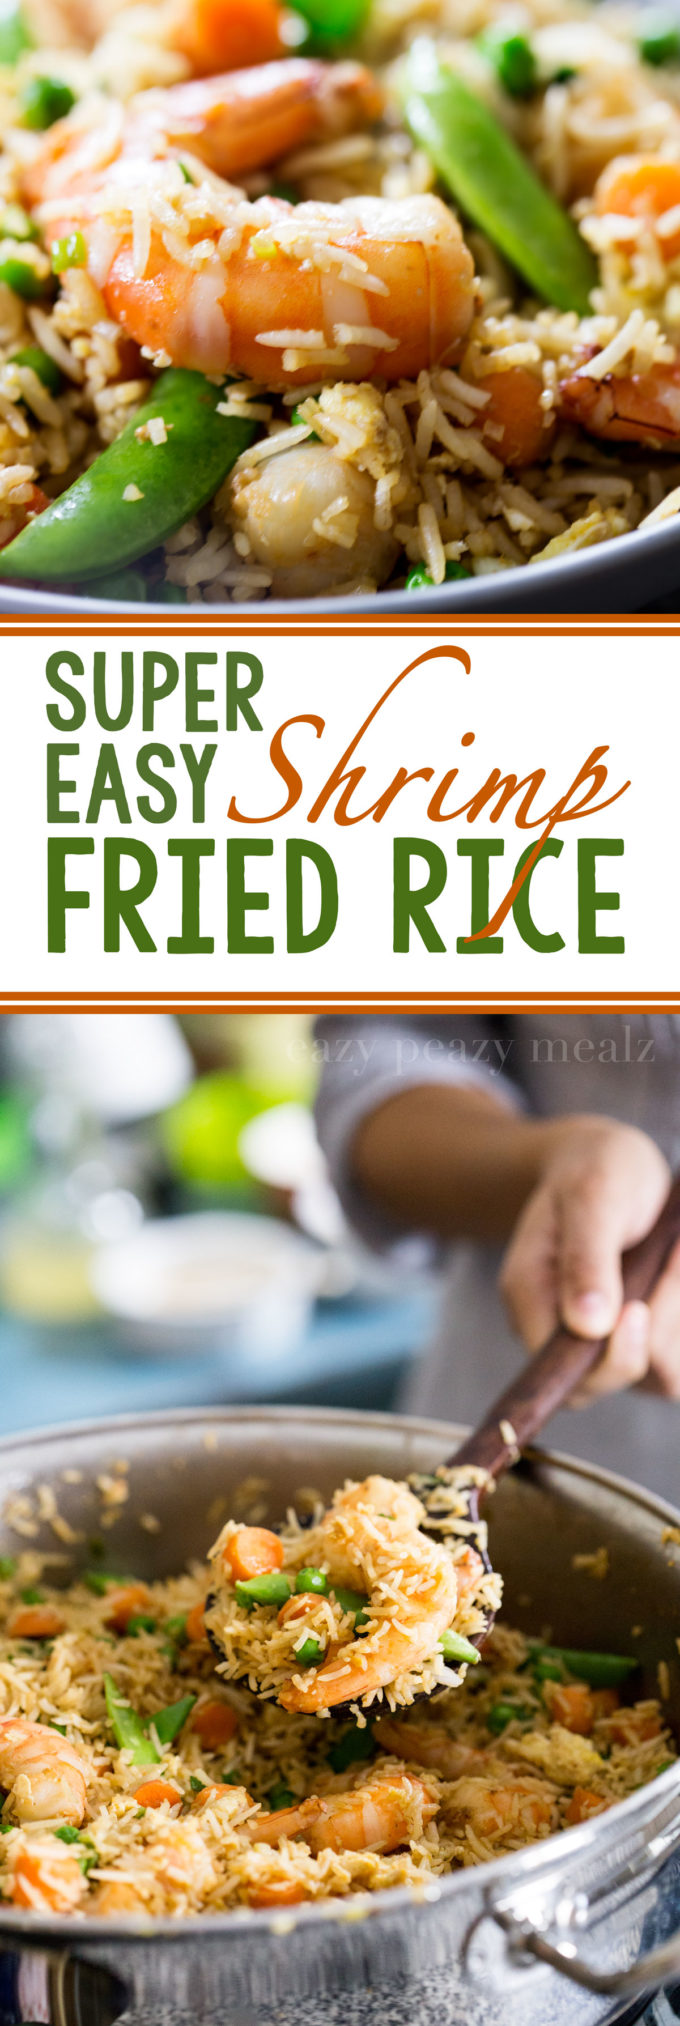 PIN-Super-easy-shrimp-fried-rice